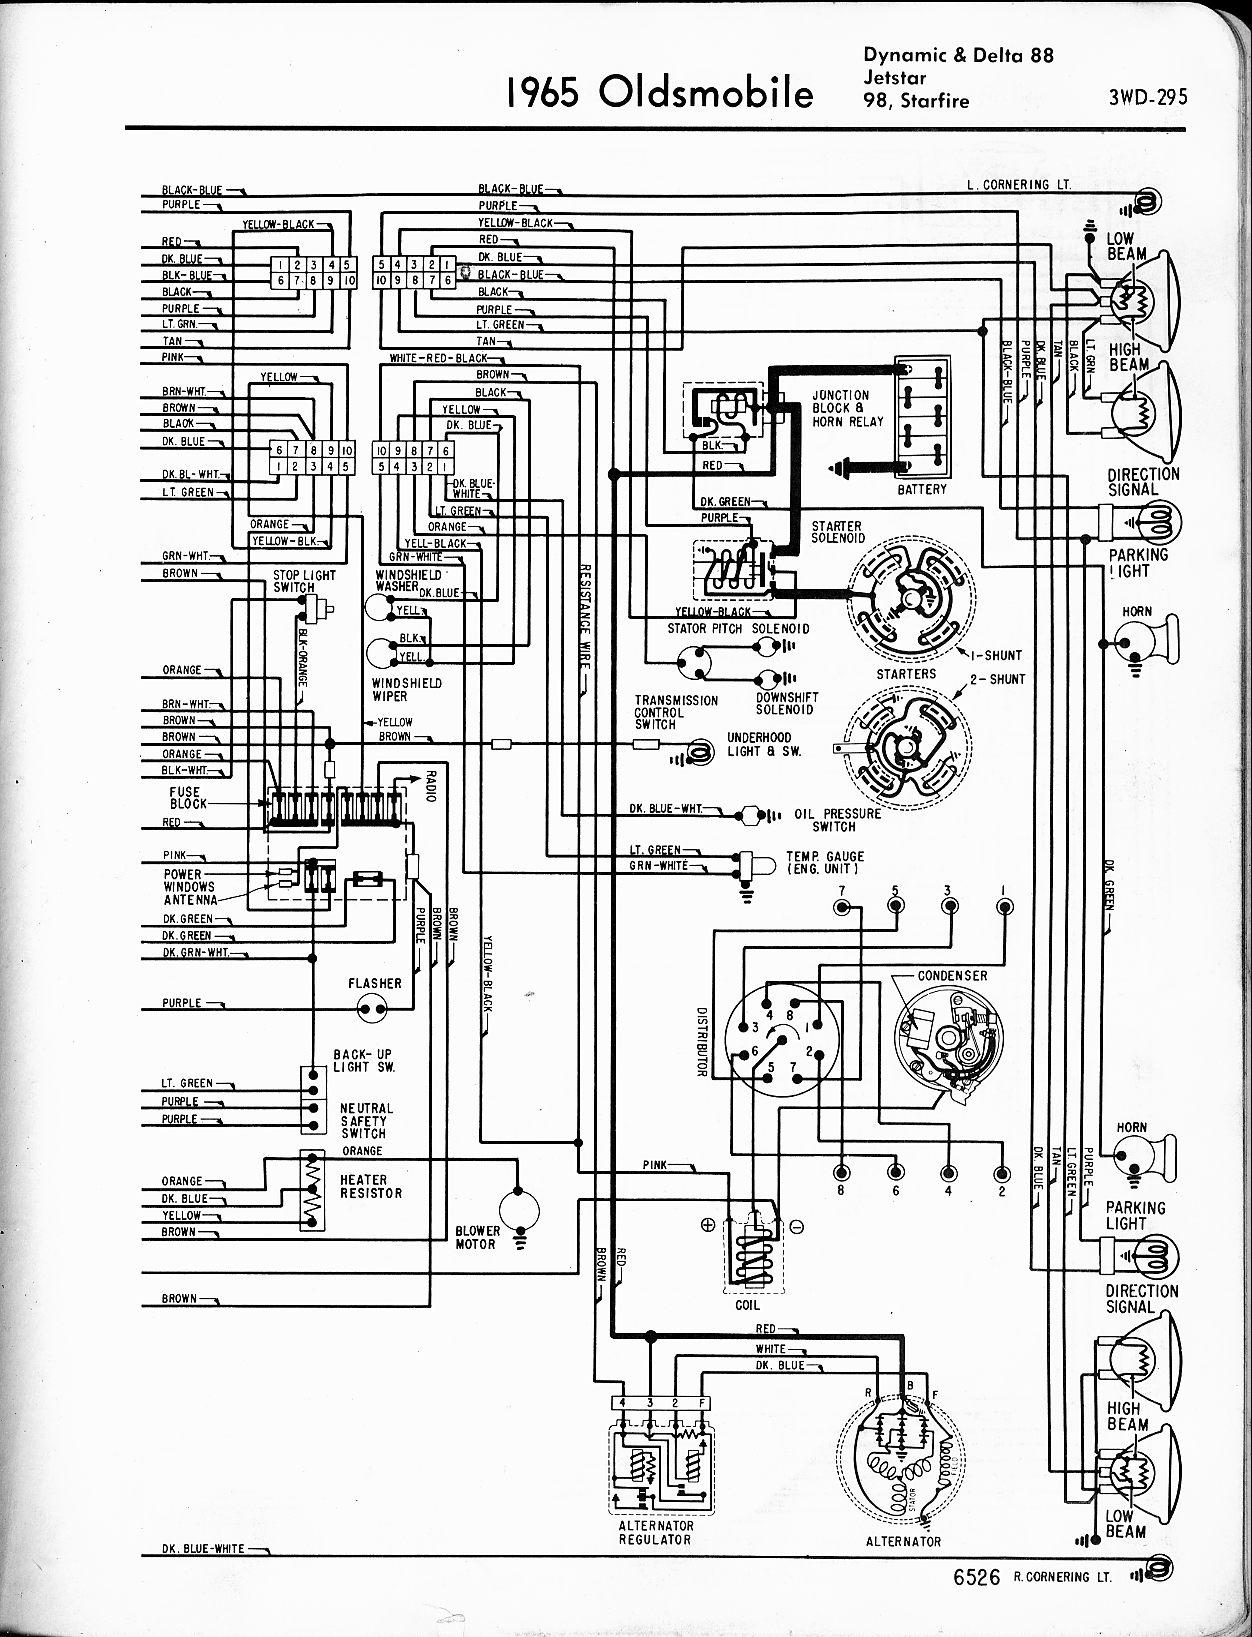 1949 Chevy Truck Wiring Diagram. Chevy. Auto Fuse Box Diagram